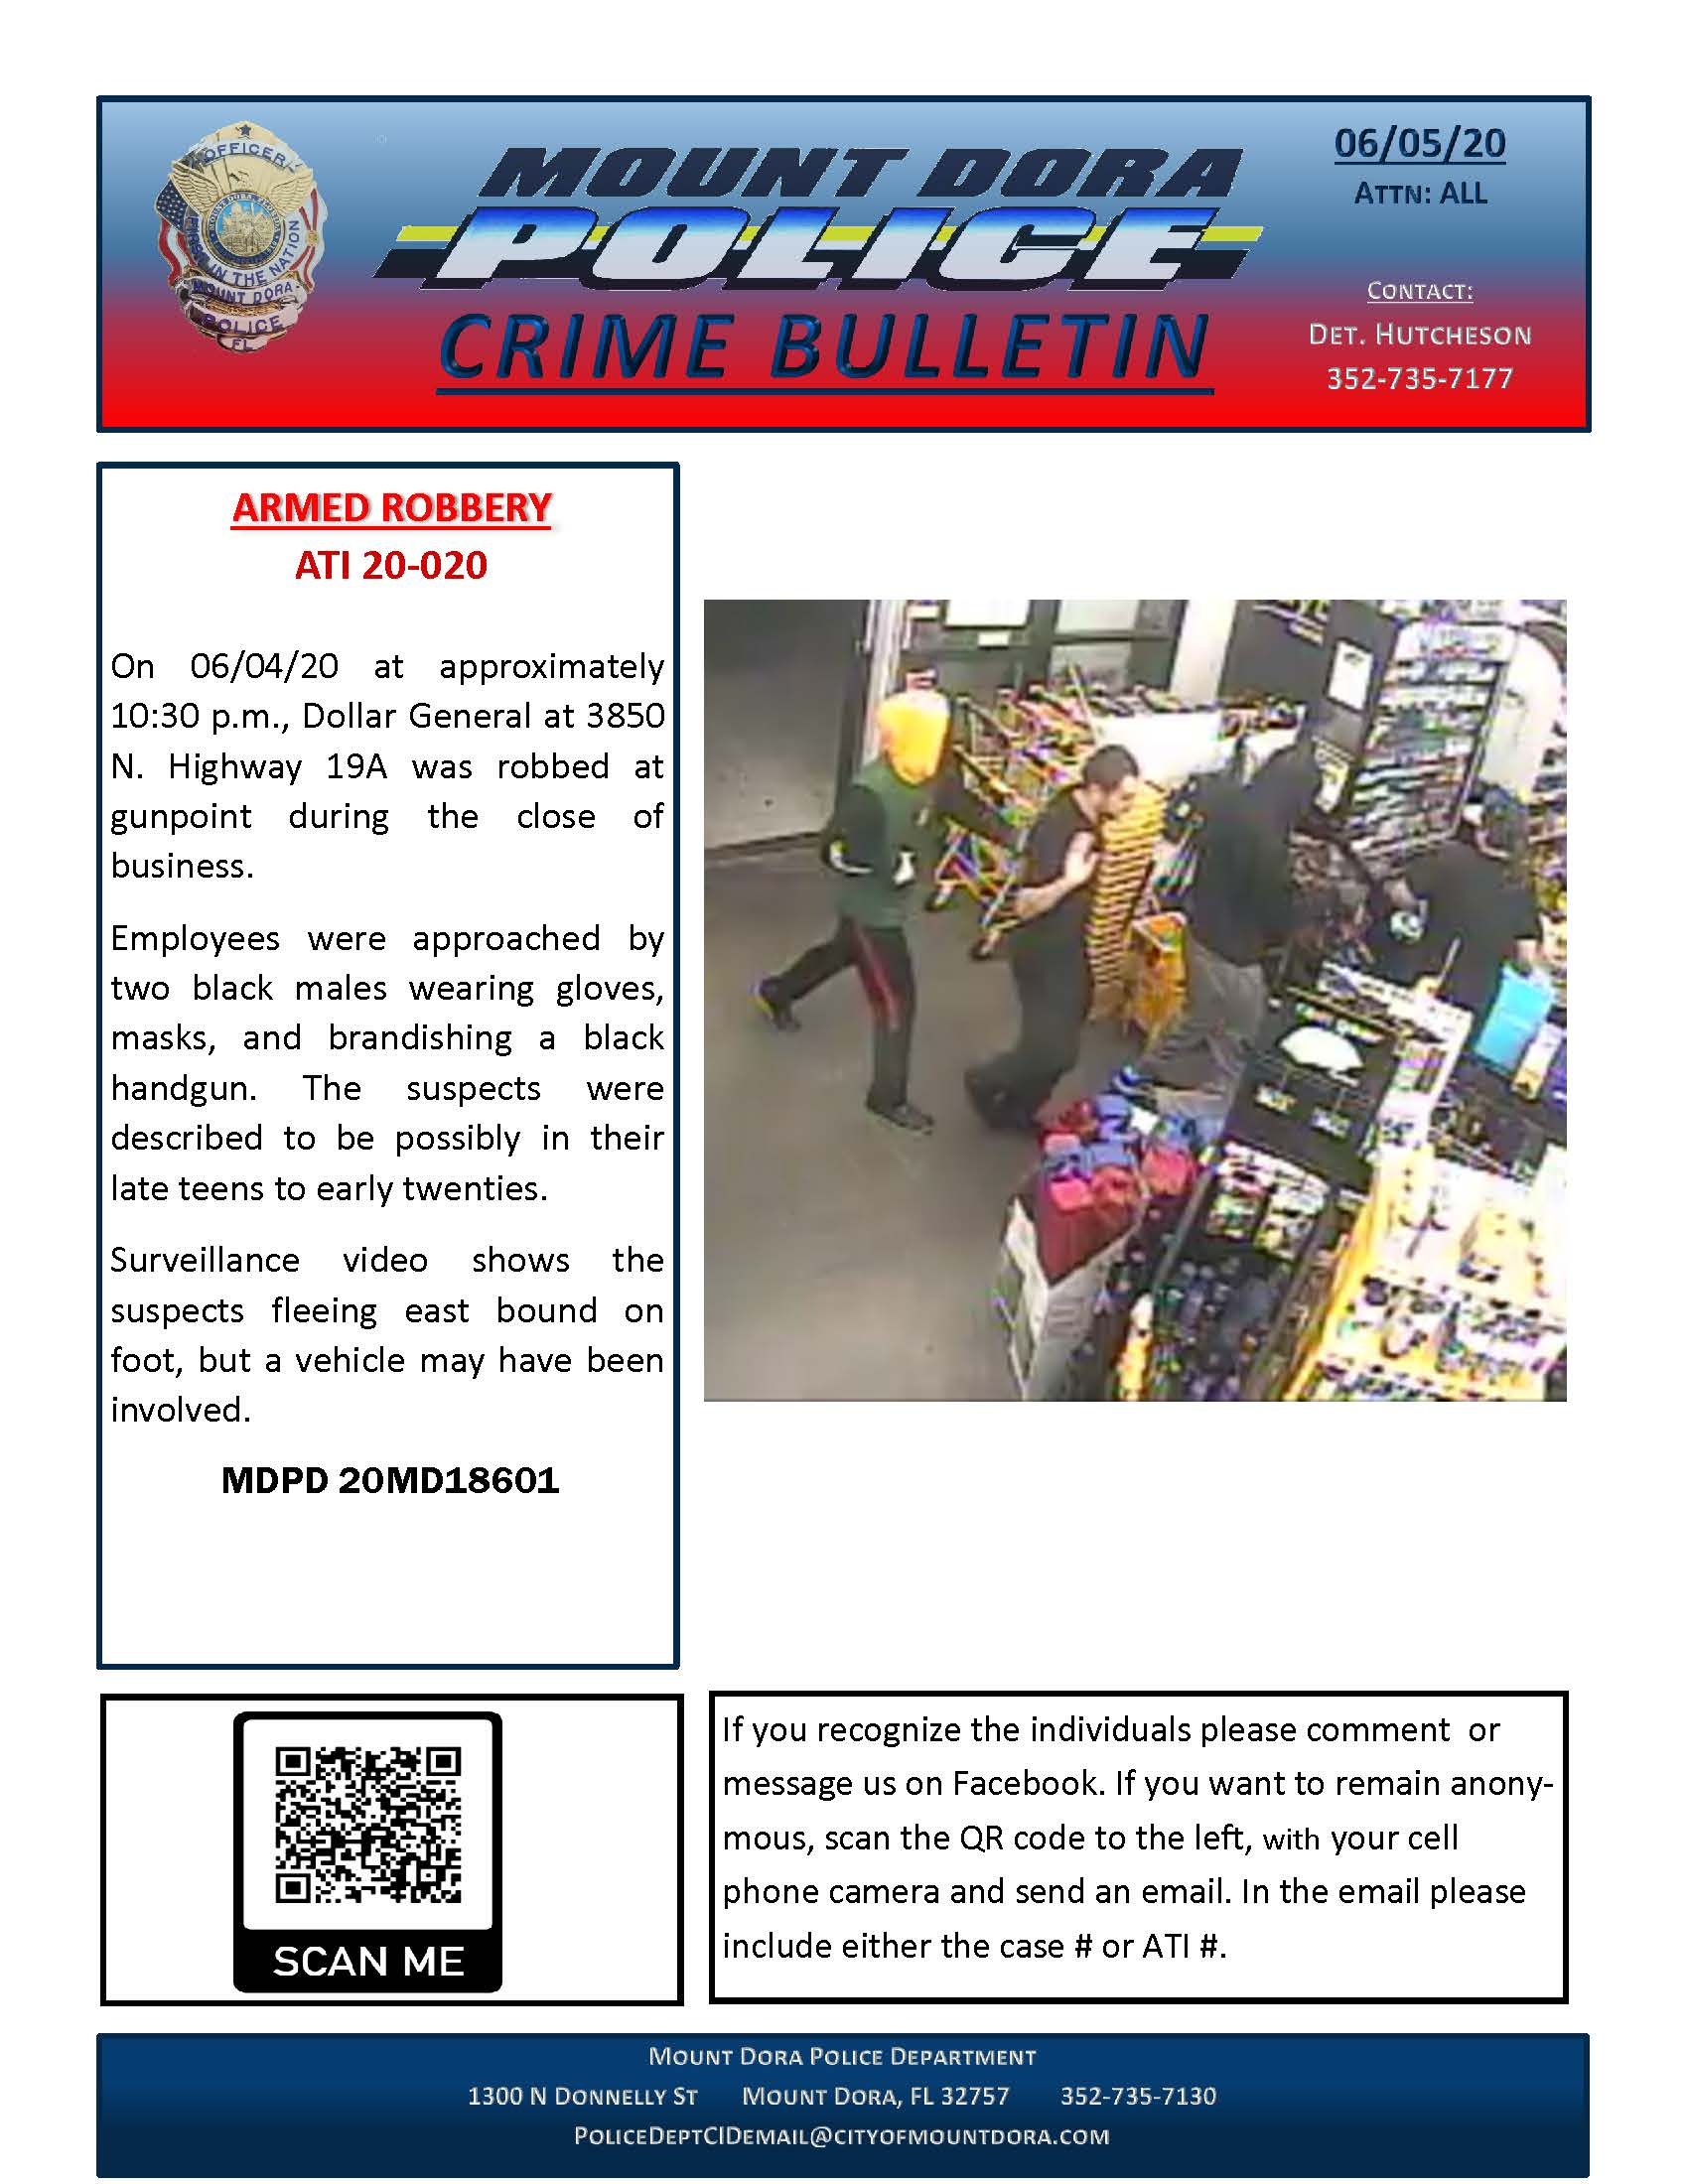 Dollar General Armed Robbery Crime Bulletin